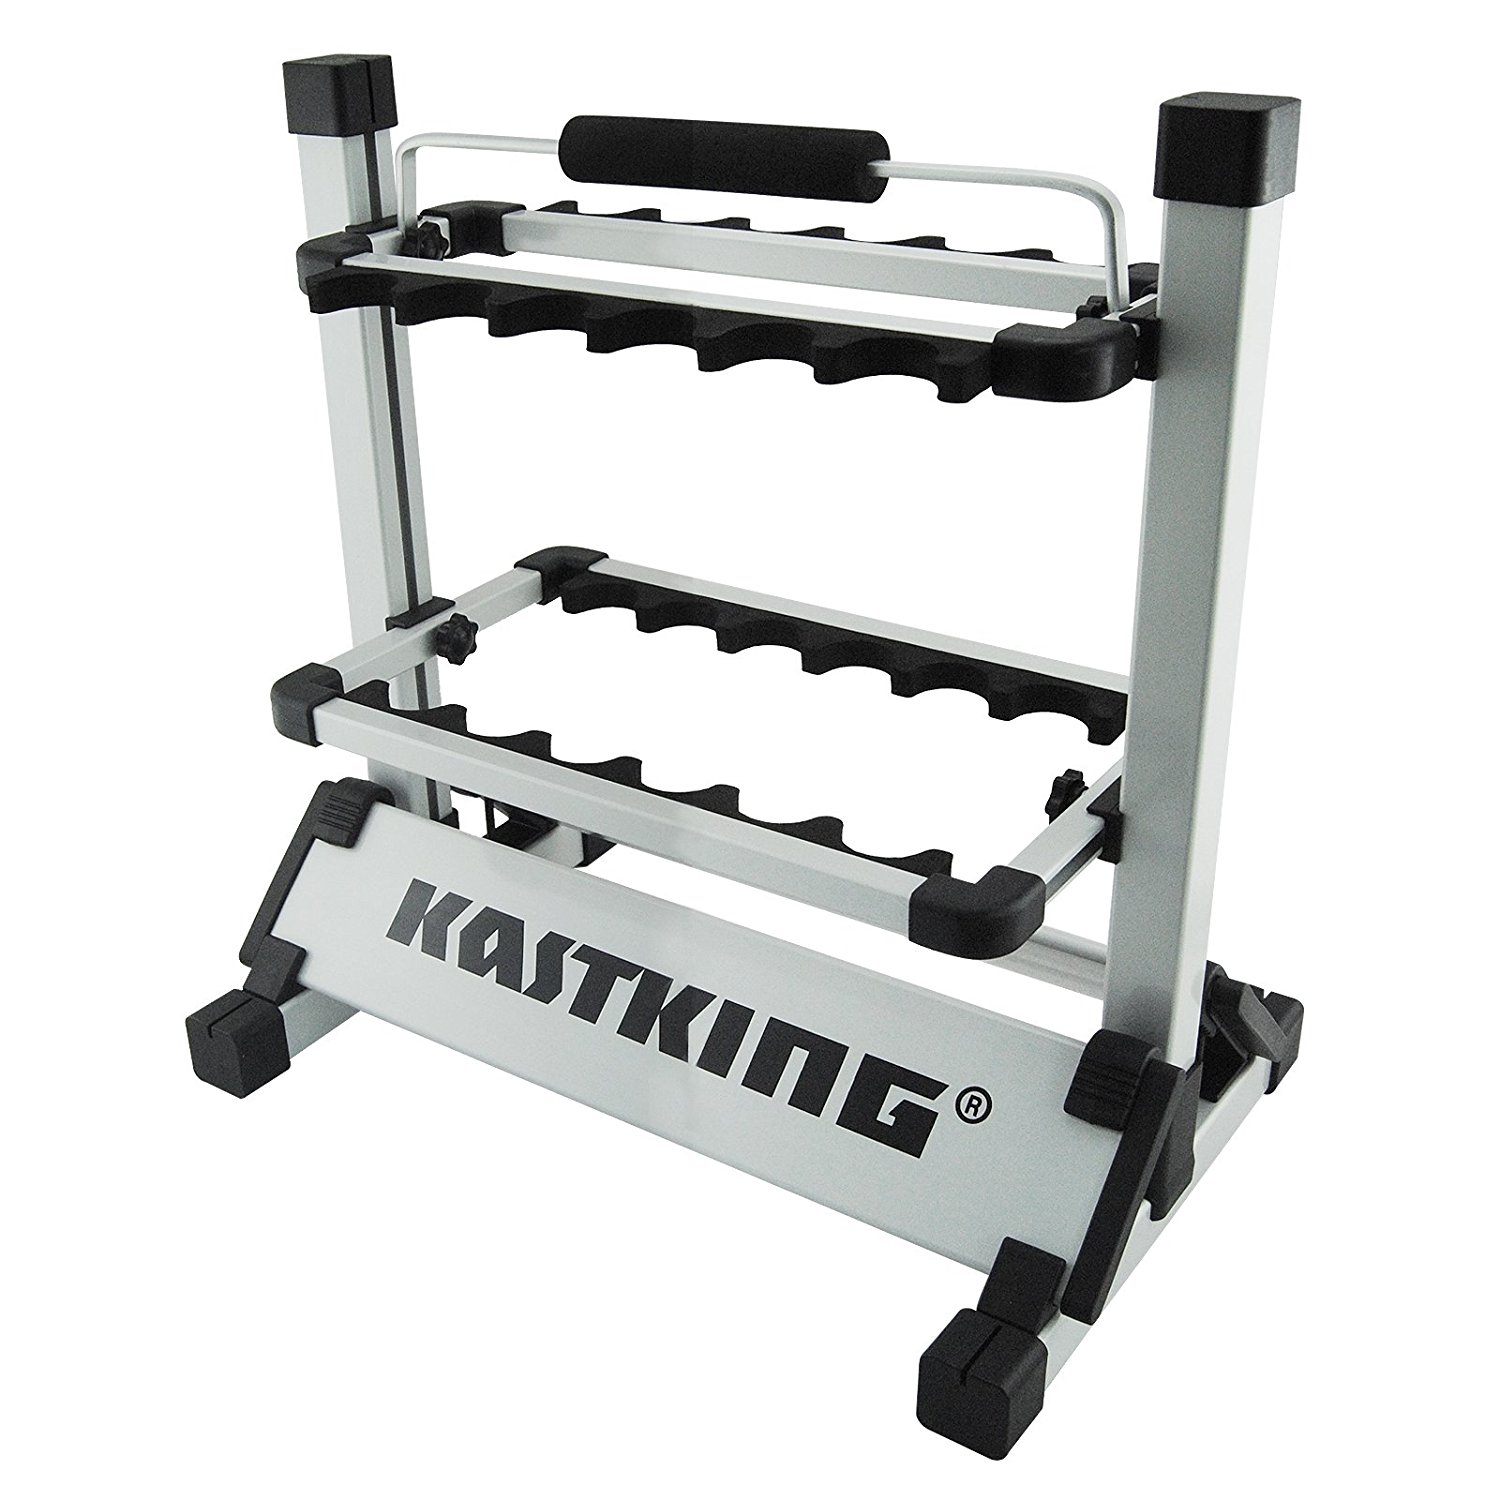 folding chair fishing pole holder wwe toys ladders chairs and tables kastking rack em up rod portable aluminum holds 13 rods great for storing poles on boat truck rv at home or in